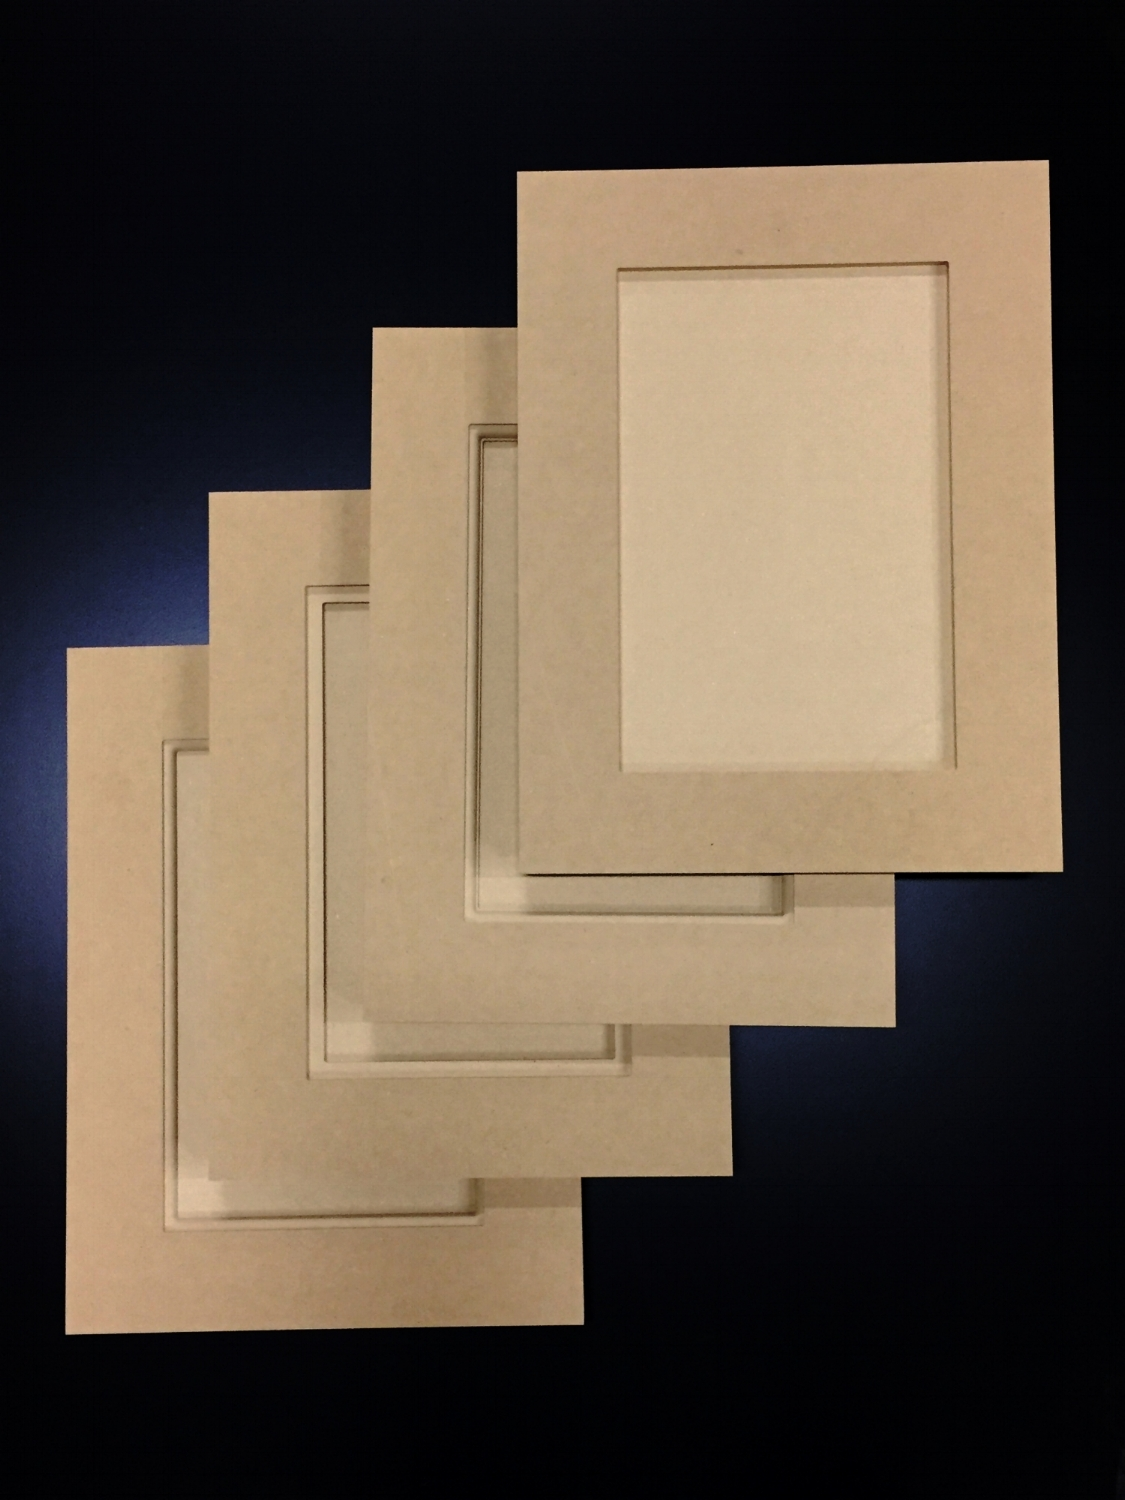 MDF Cabinet Doors  - Our MDF cabinet doors are machined from a single piece of material.  We use the finest grade of highly refined medium density fiberboard available.  Your doors will be smooth and flat, ready to paint!Have you had cracks on your five-piece door joints?  Use our one-piece MDF doors and never get a call back for a cracked joint!